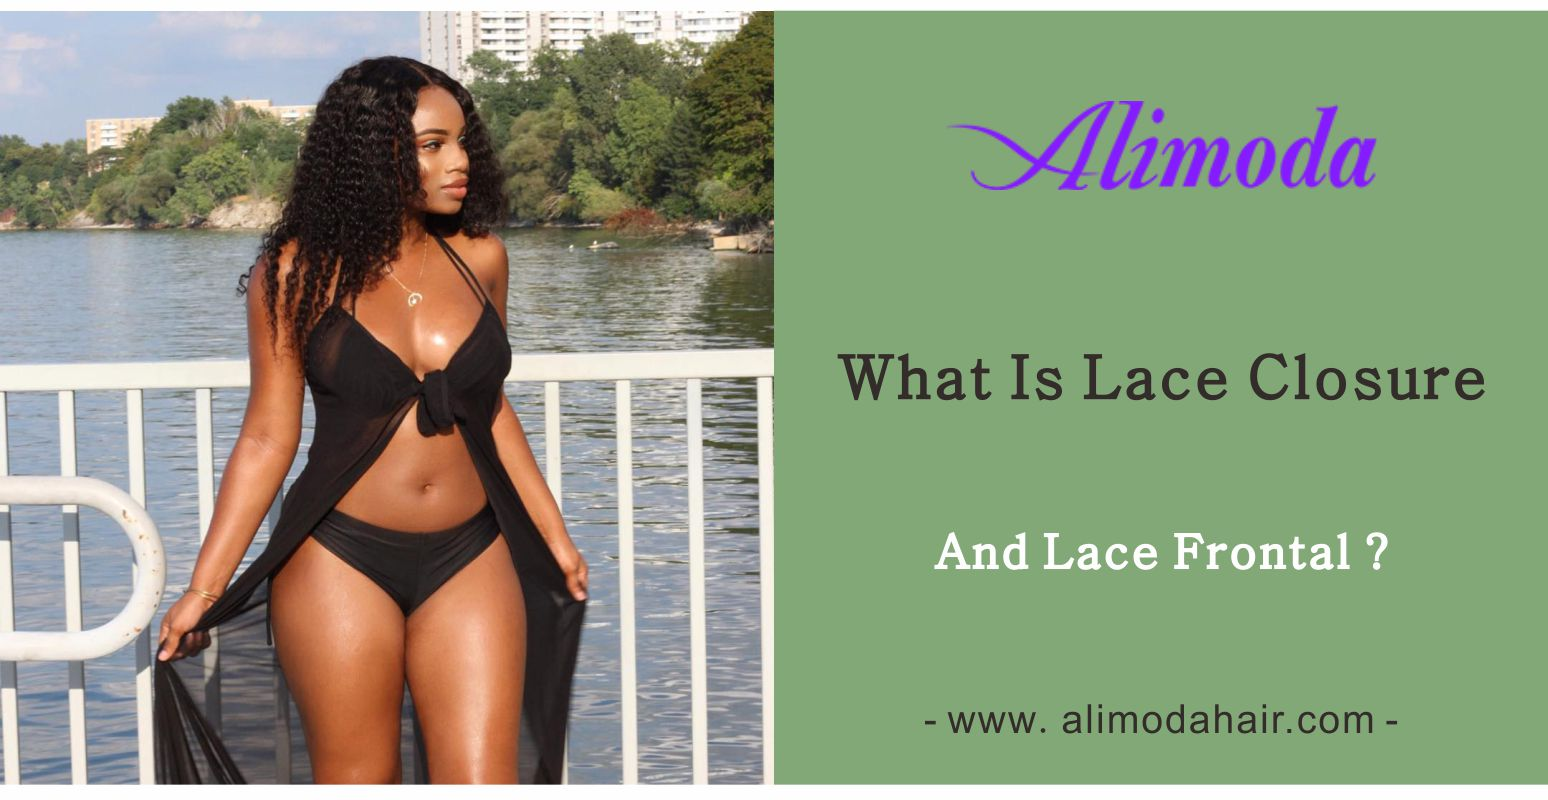 What is lace closure and lace frontal?